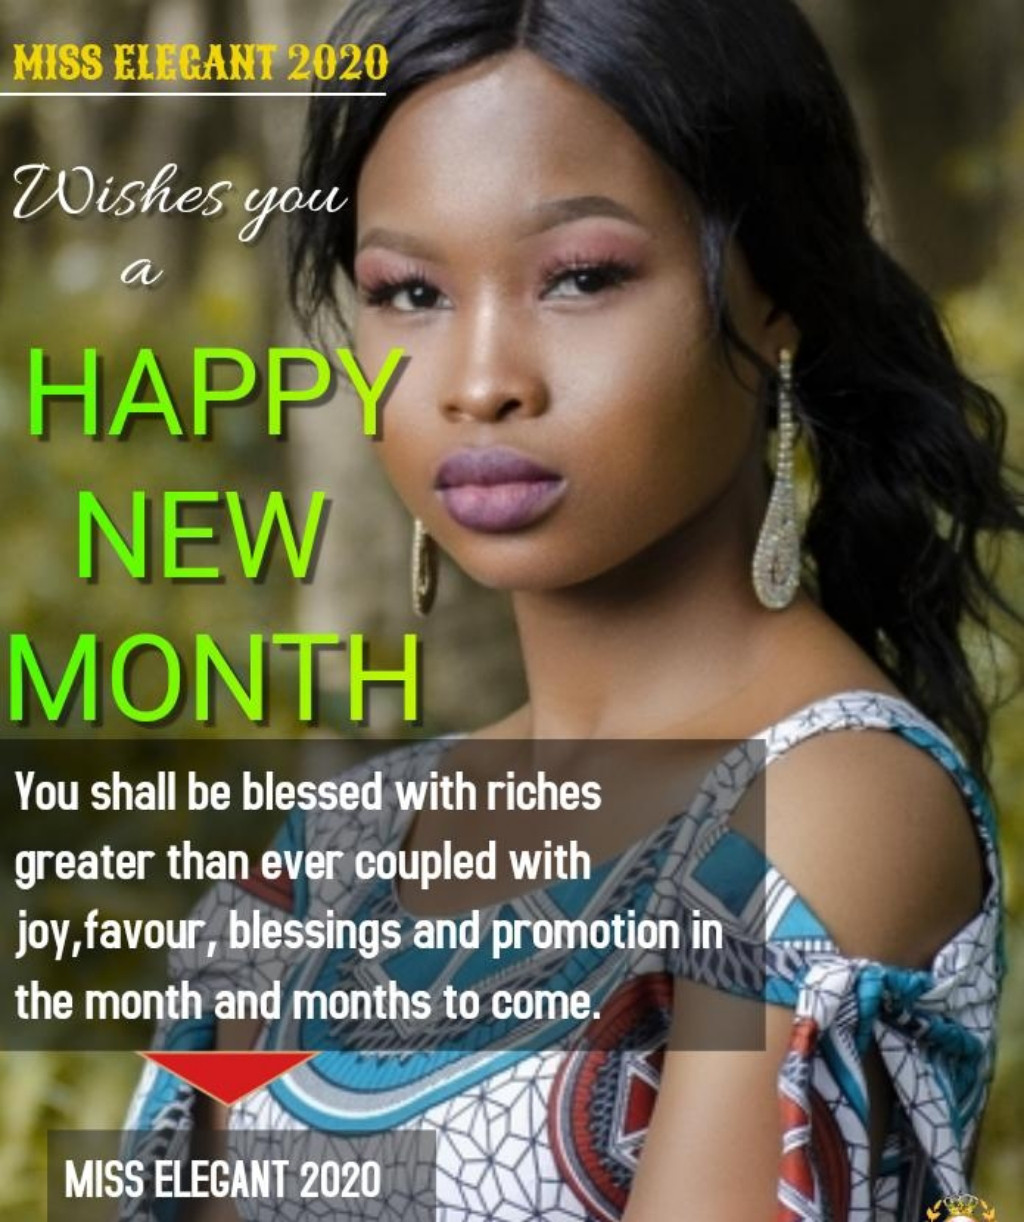 Yaply family welcome you to the second half of the year 2020. May the Lord bless us and settle our country  Amen. Miss #elegant 2020.